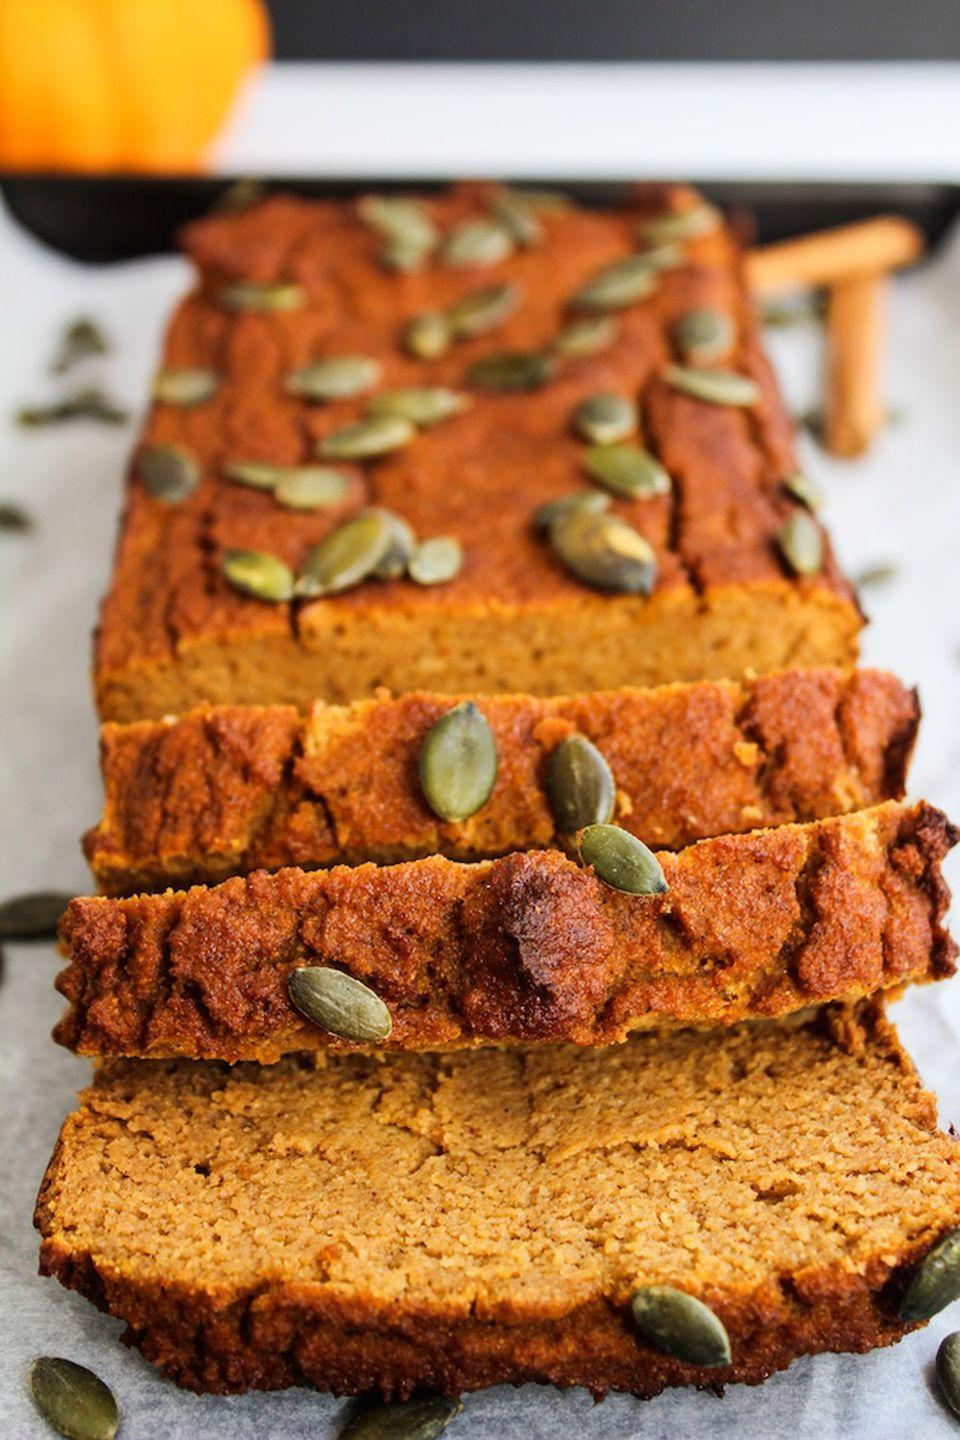 """<p>Keep your snack guilt-free with this Paleo-approved snack. </p><p><strong>Get the recipe at <a href=""""https://www.asaucykitchen.com/paleo-pumpkin-bread/"""" rel=""""nofollow noopener"""" target=""""_blank"""" data-ylk=""""slk:A Saucy Kitchen"""" class=""""link rapid-noclick-resp"""">A Saucy Kitchen</a>.</strong></p>"""